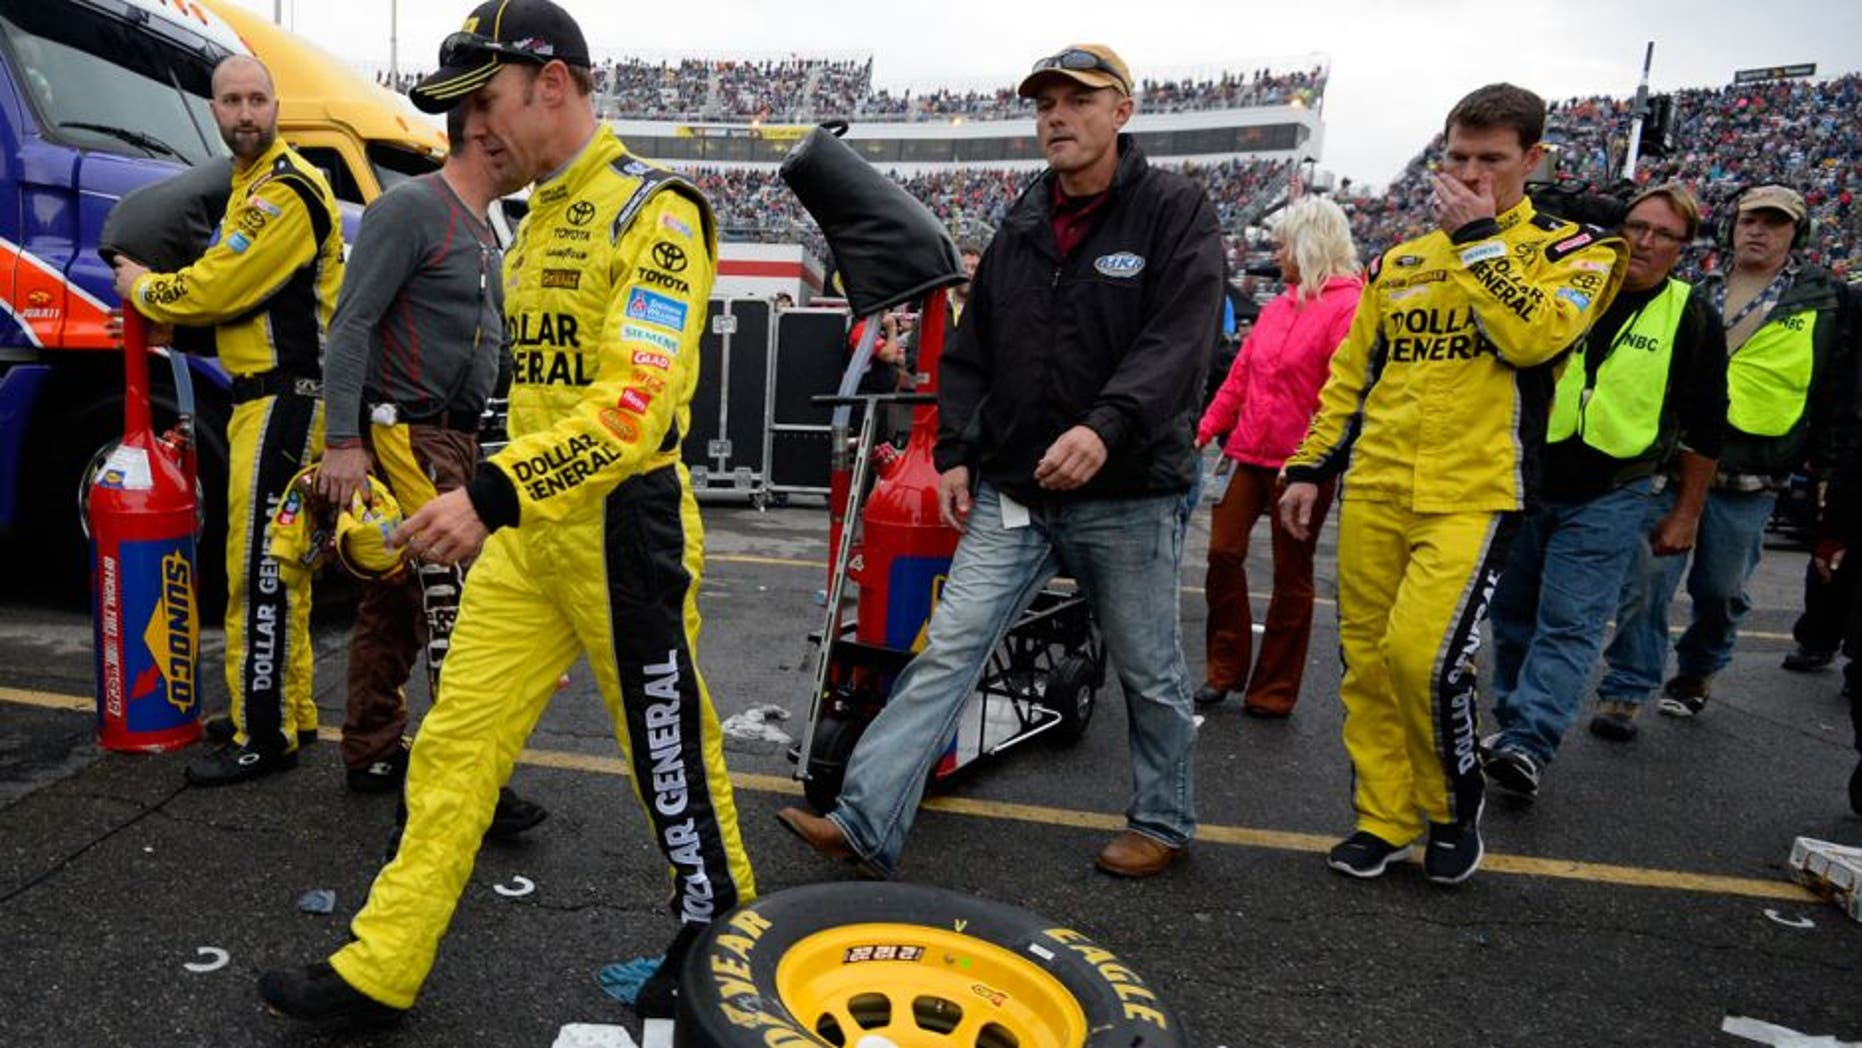 MARTINSVILLE, VA - NOVEMBER 01: Matt Kenseth, driver of the #20 Dollar General Toyota, walks through the garage area after an on-track incident with Joey Logano during the NASCAR Sprint Cup Series Goody's Headache Relief Shot 500 at Martinsville Speedway on November 1, 2015 in Martinsville, Virginia. (Photo by Robert Laberge/Getty Images)